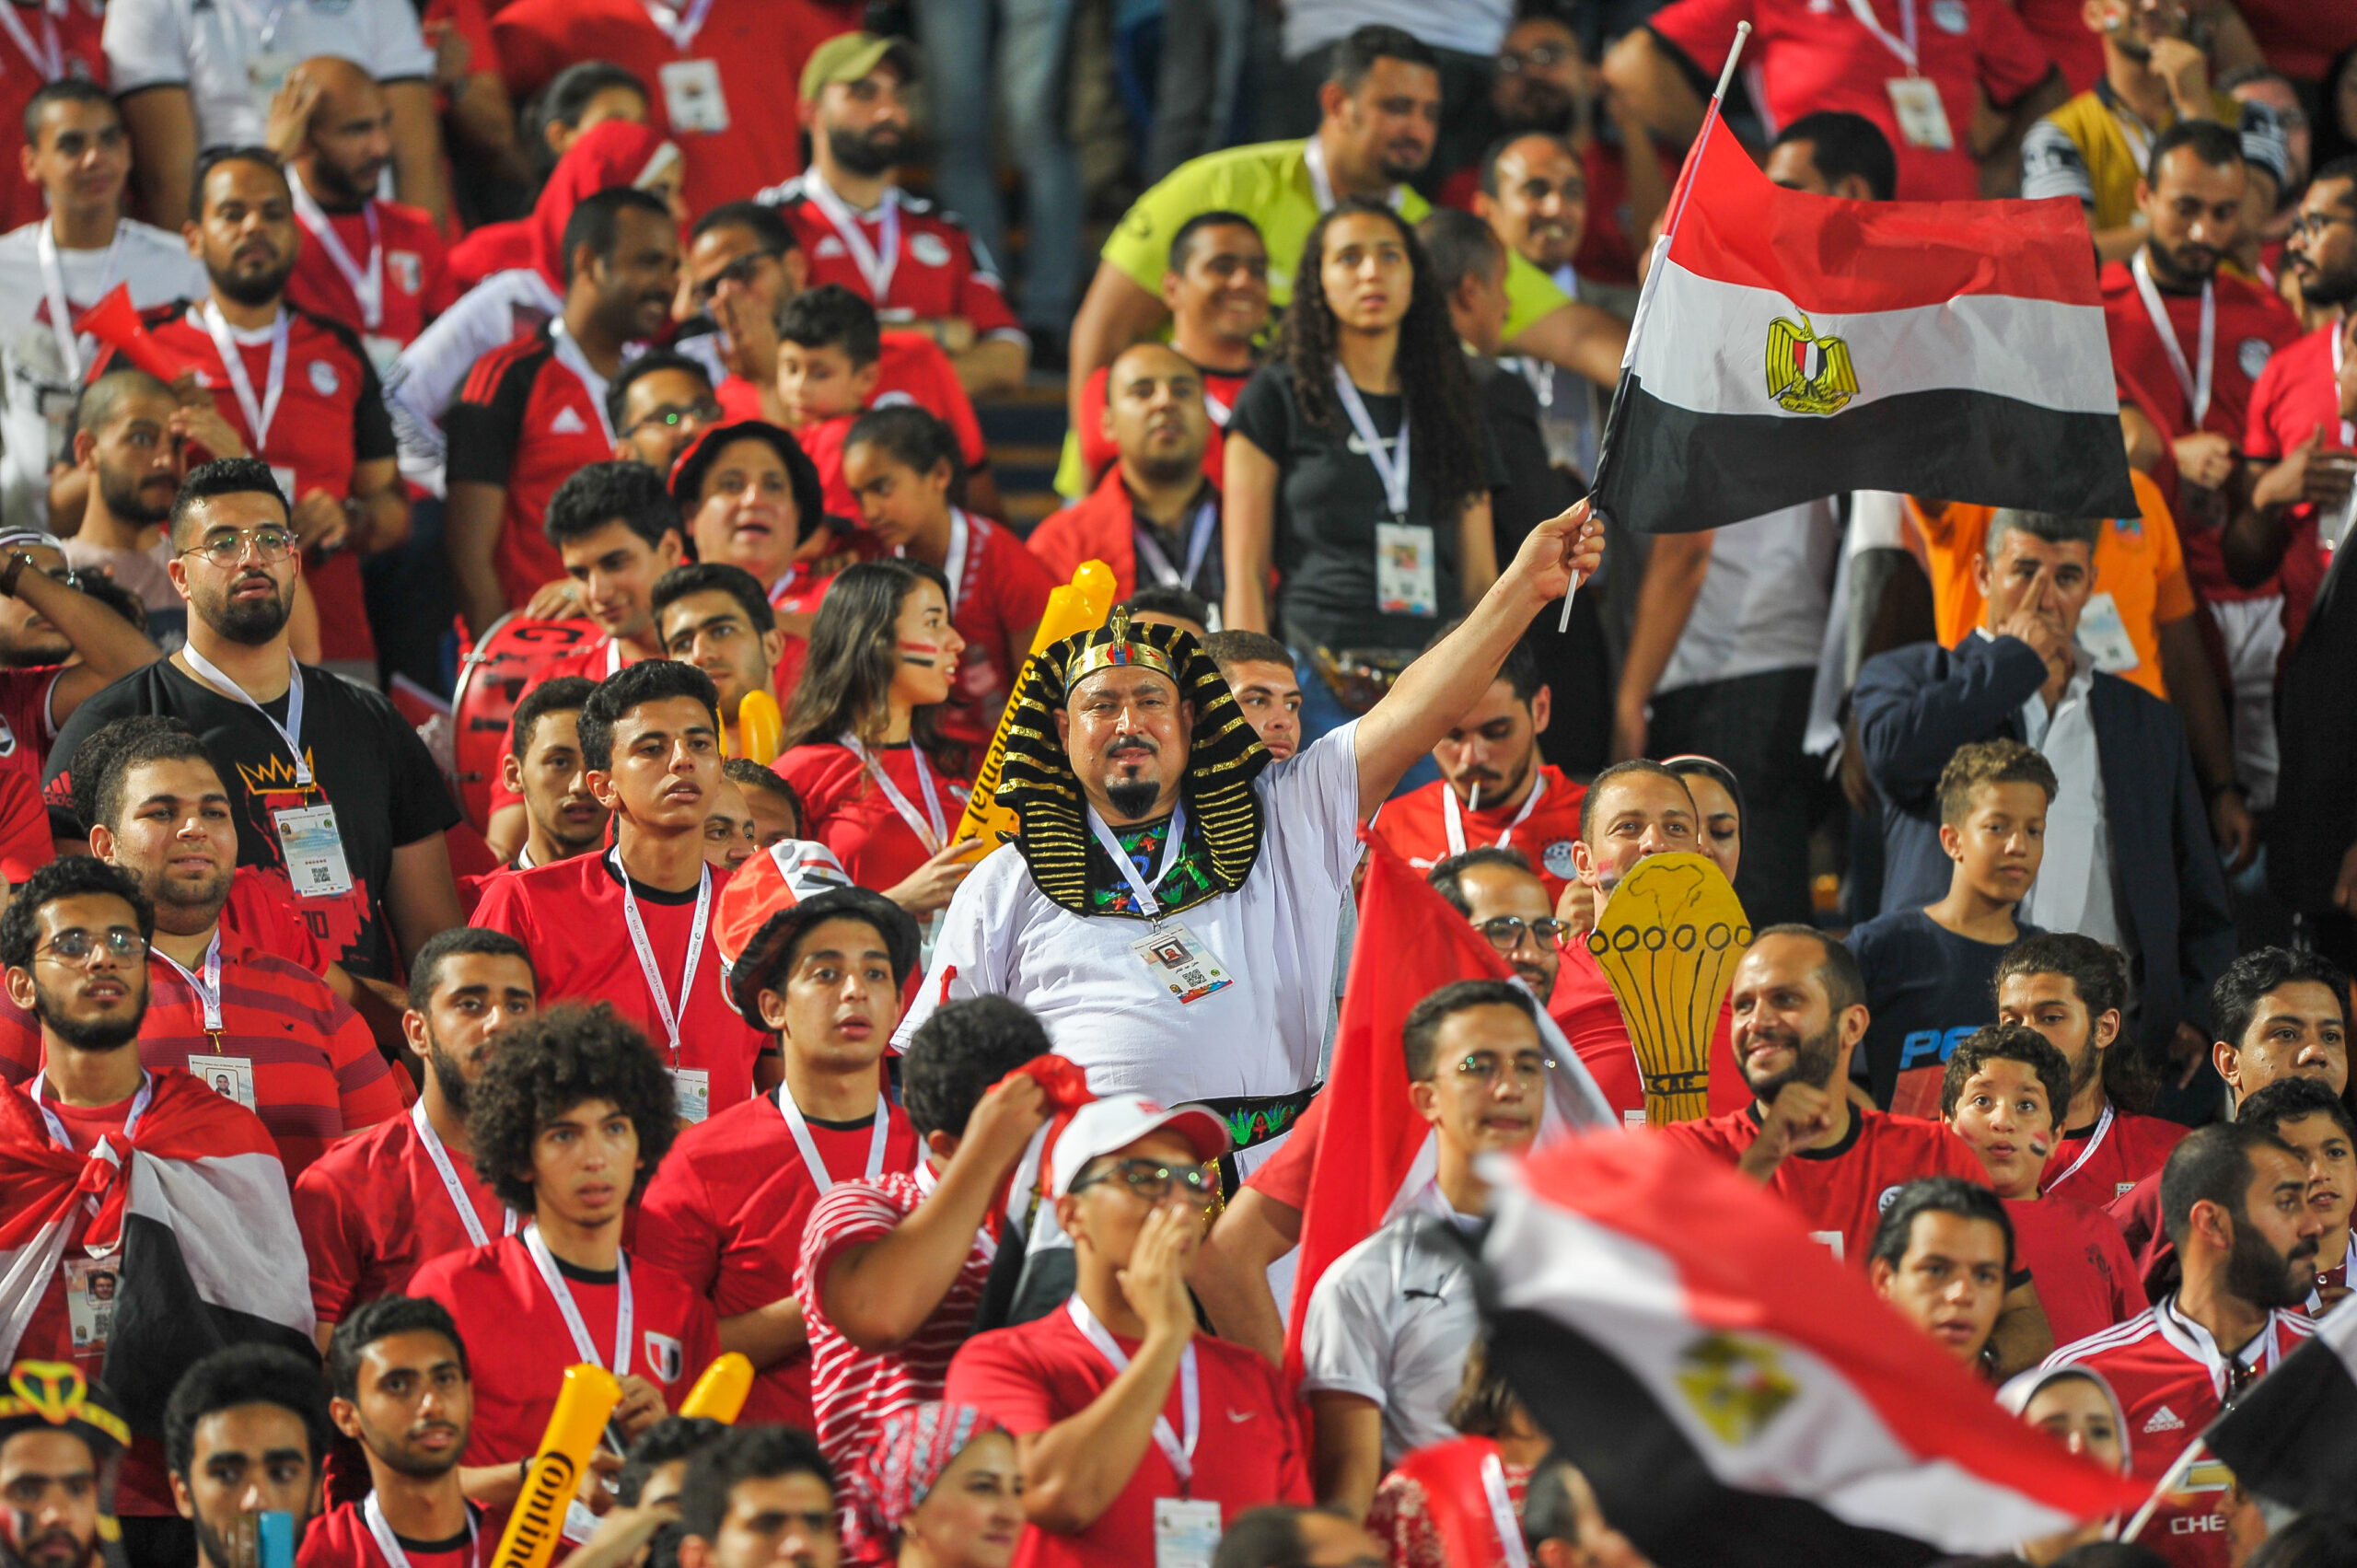 Are you curious about Egyptian football clubs? Click here to find out all about Egypt's football matches and the African Champions League.